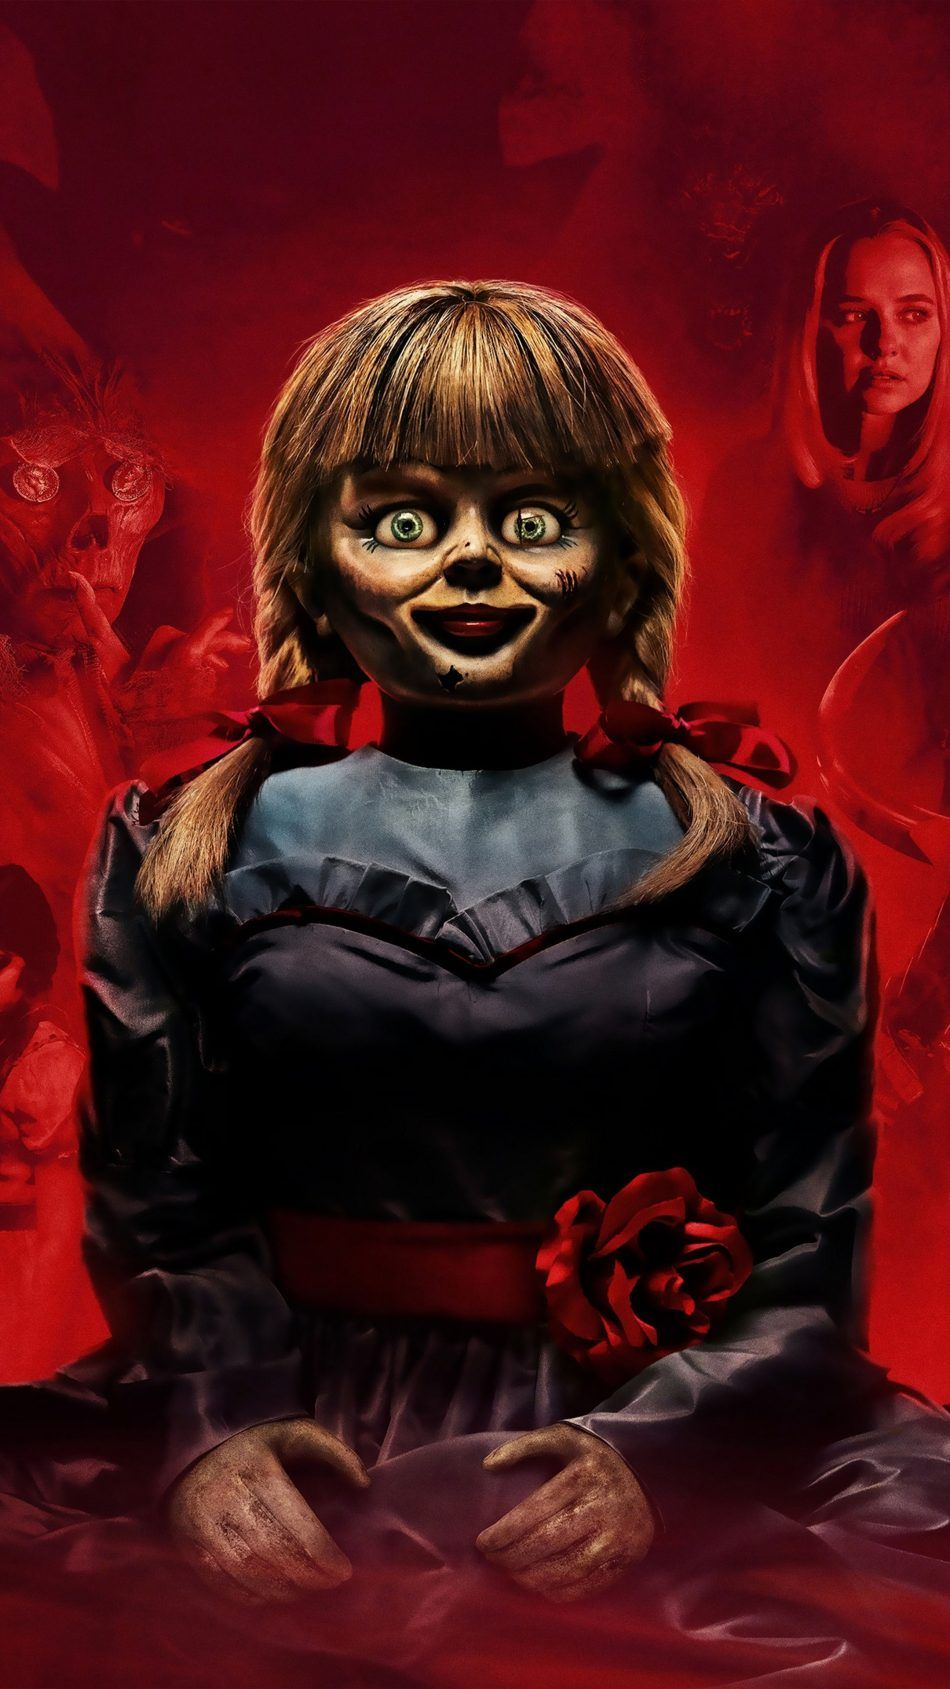 Annabelle Doll Comes Home 2019 Horror Wallpapers Hd Annabelle Doll Scary Wallpaper